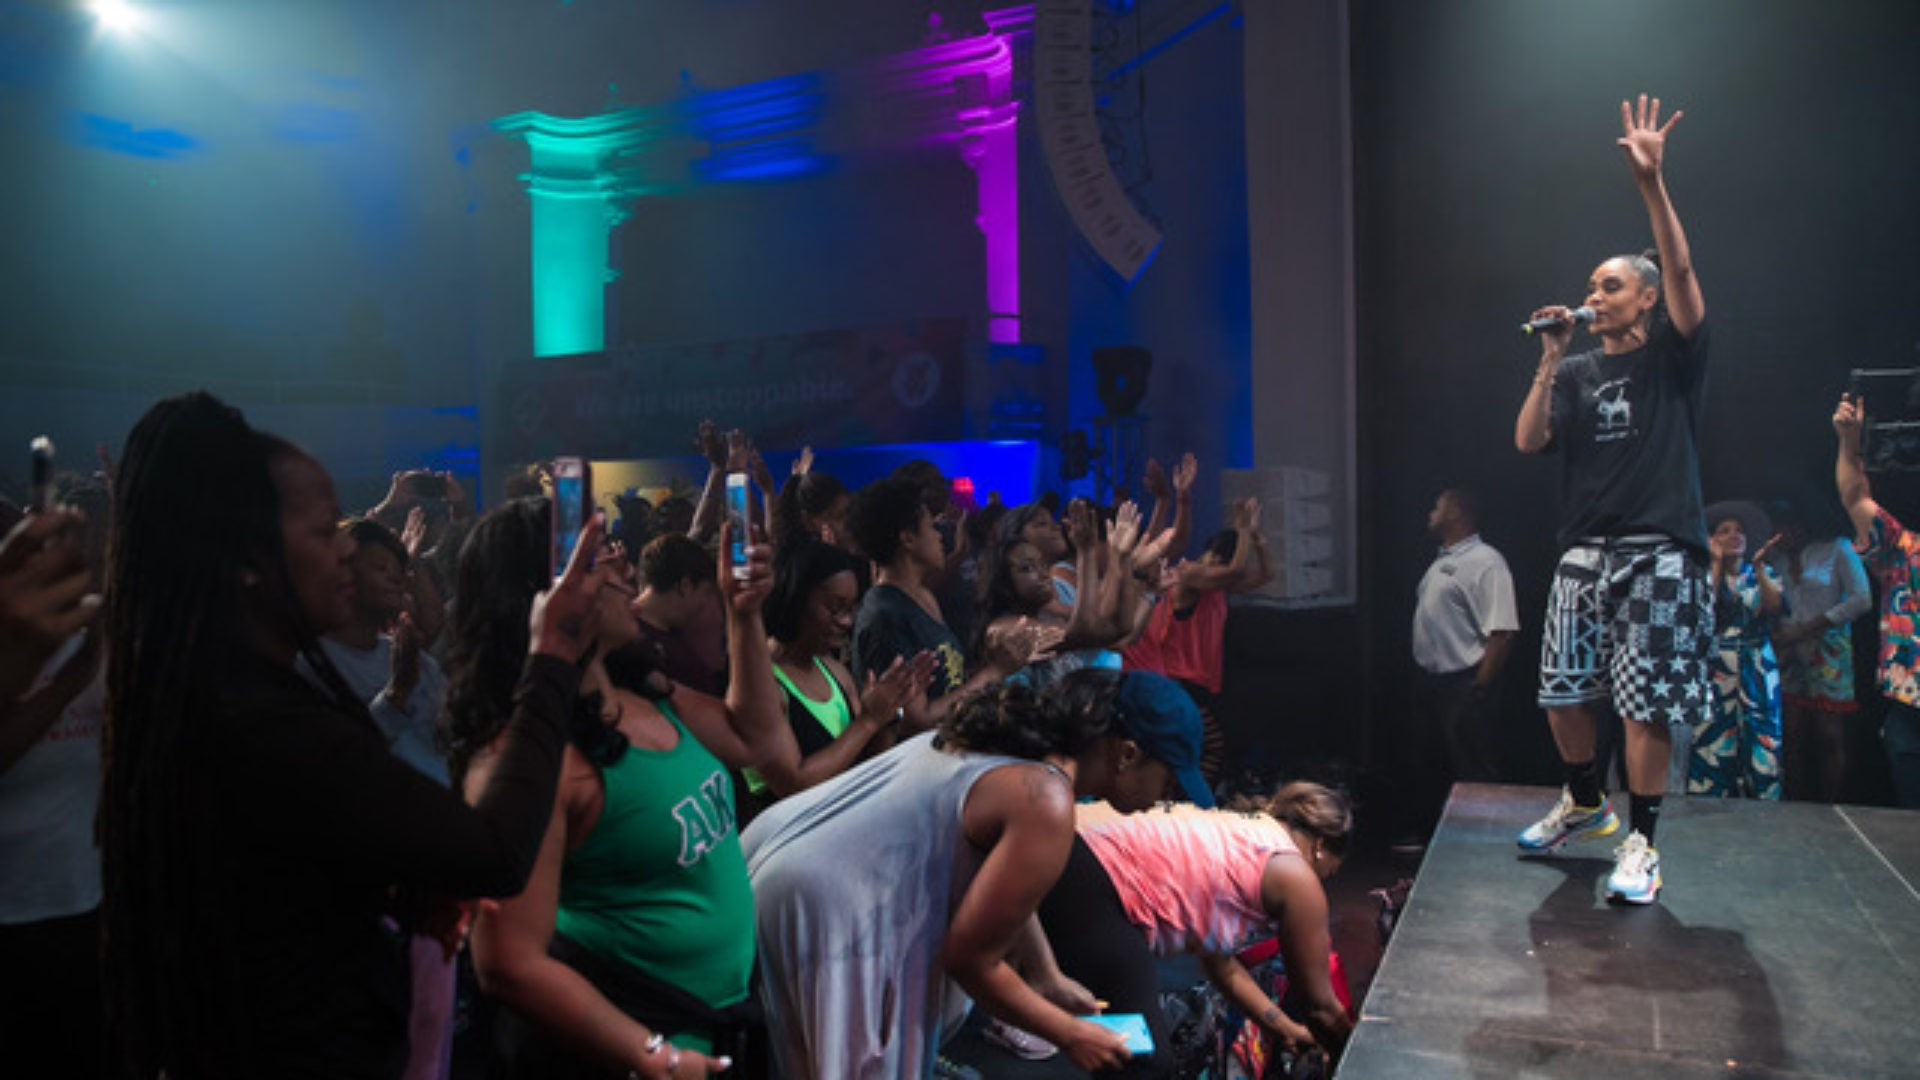 Weight Watchers & Daybreaker Dance Party Gets Festival Goers Moving